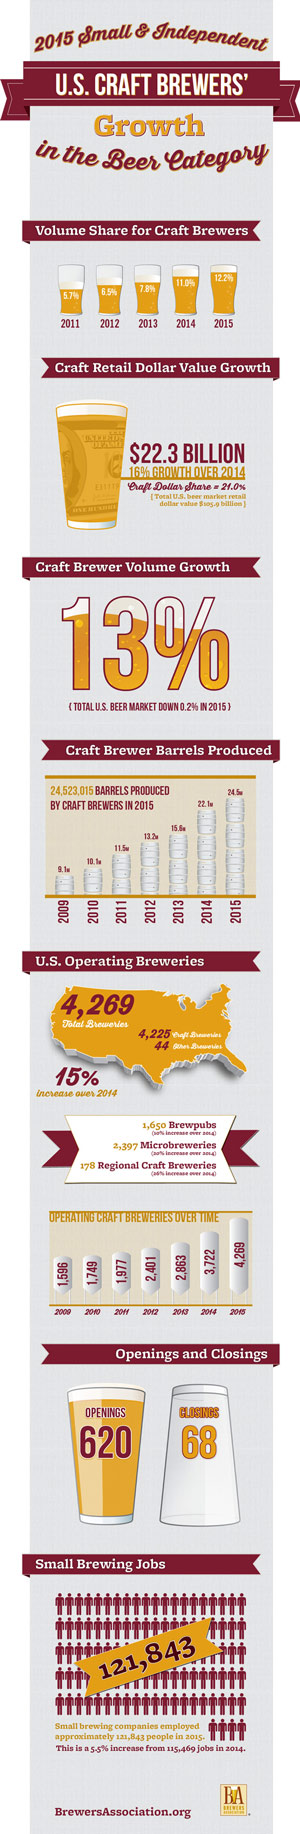 Pin On Homebrew And Craft Beer News